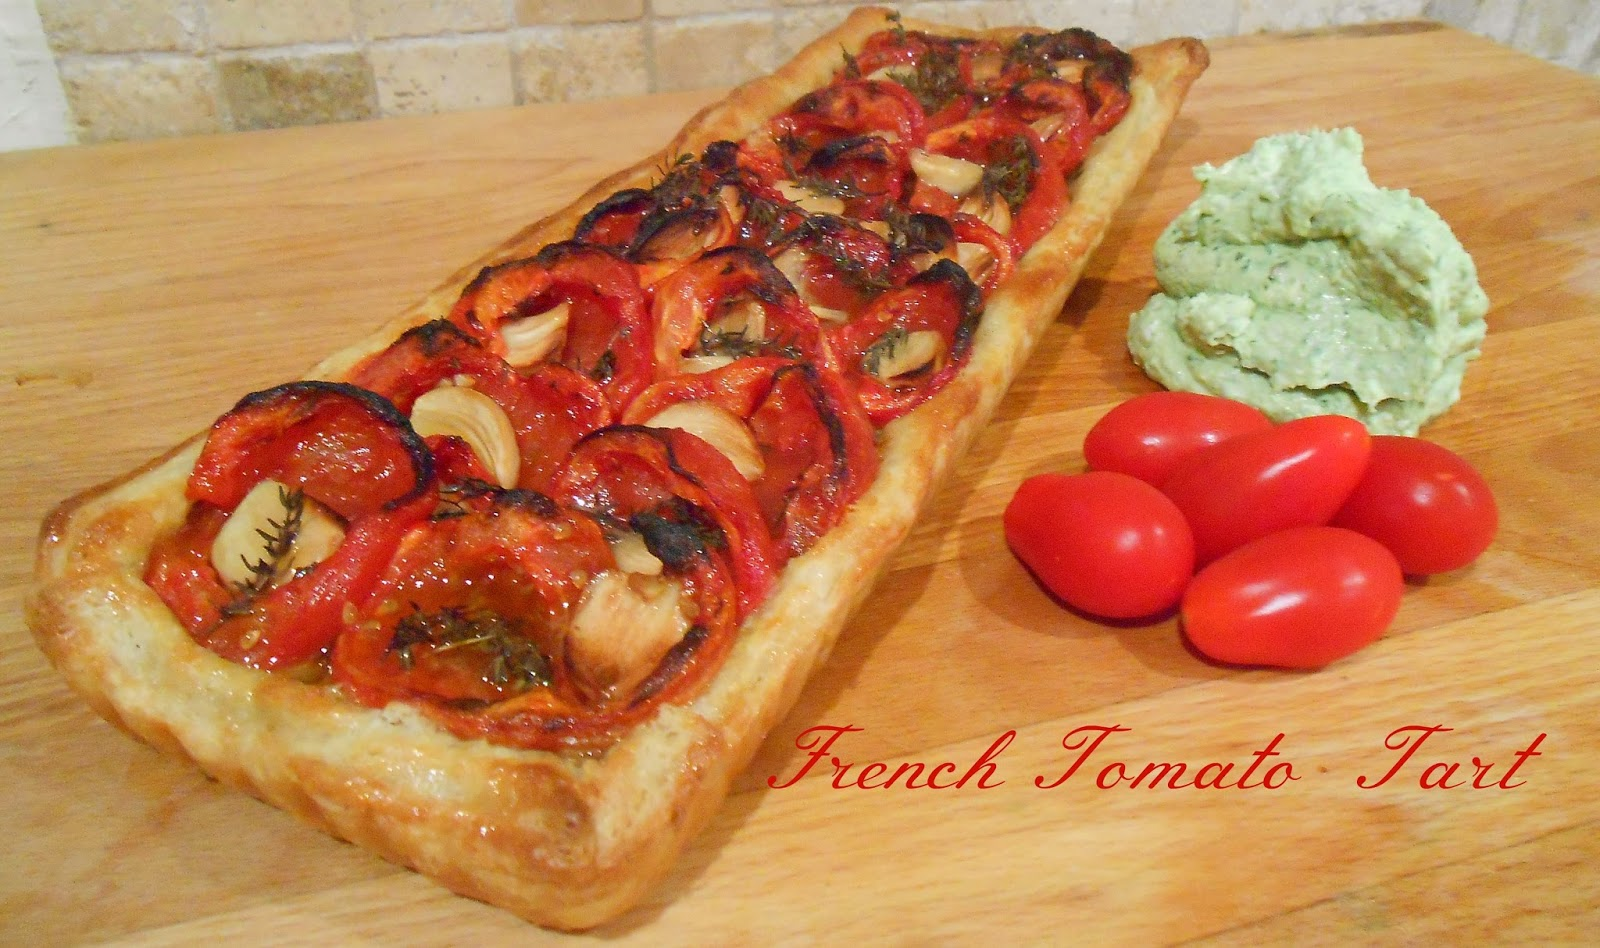 The good life mum: French tomato tart